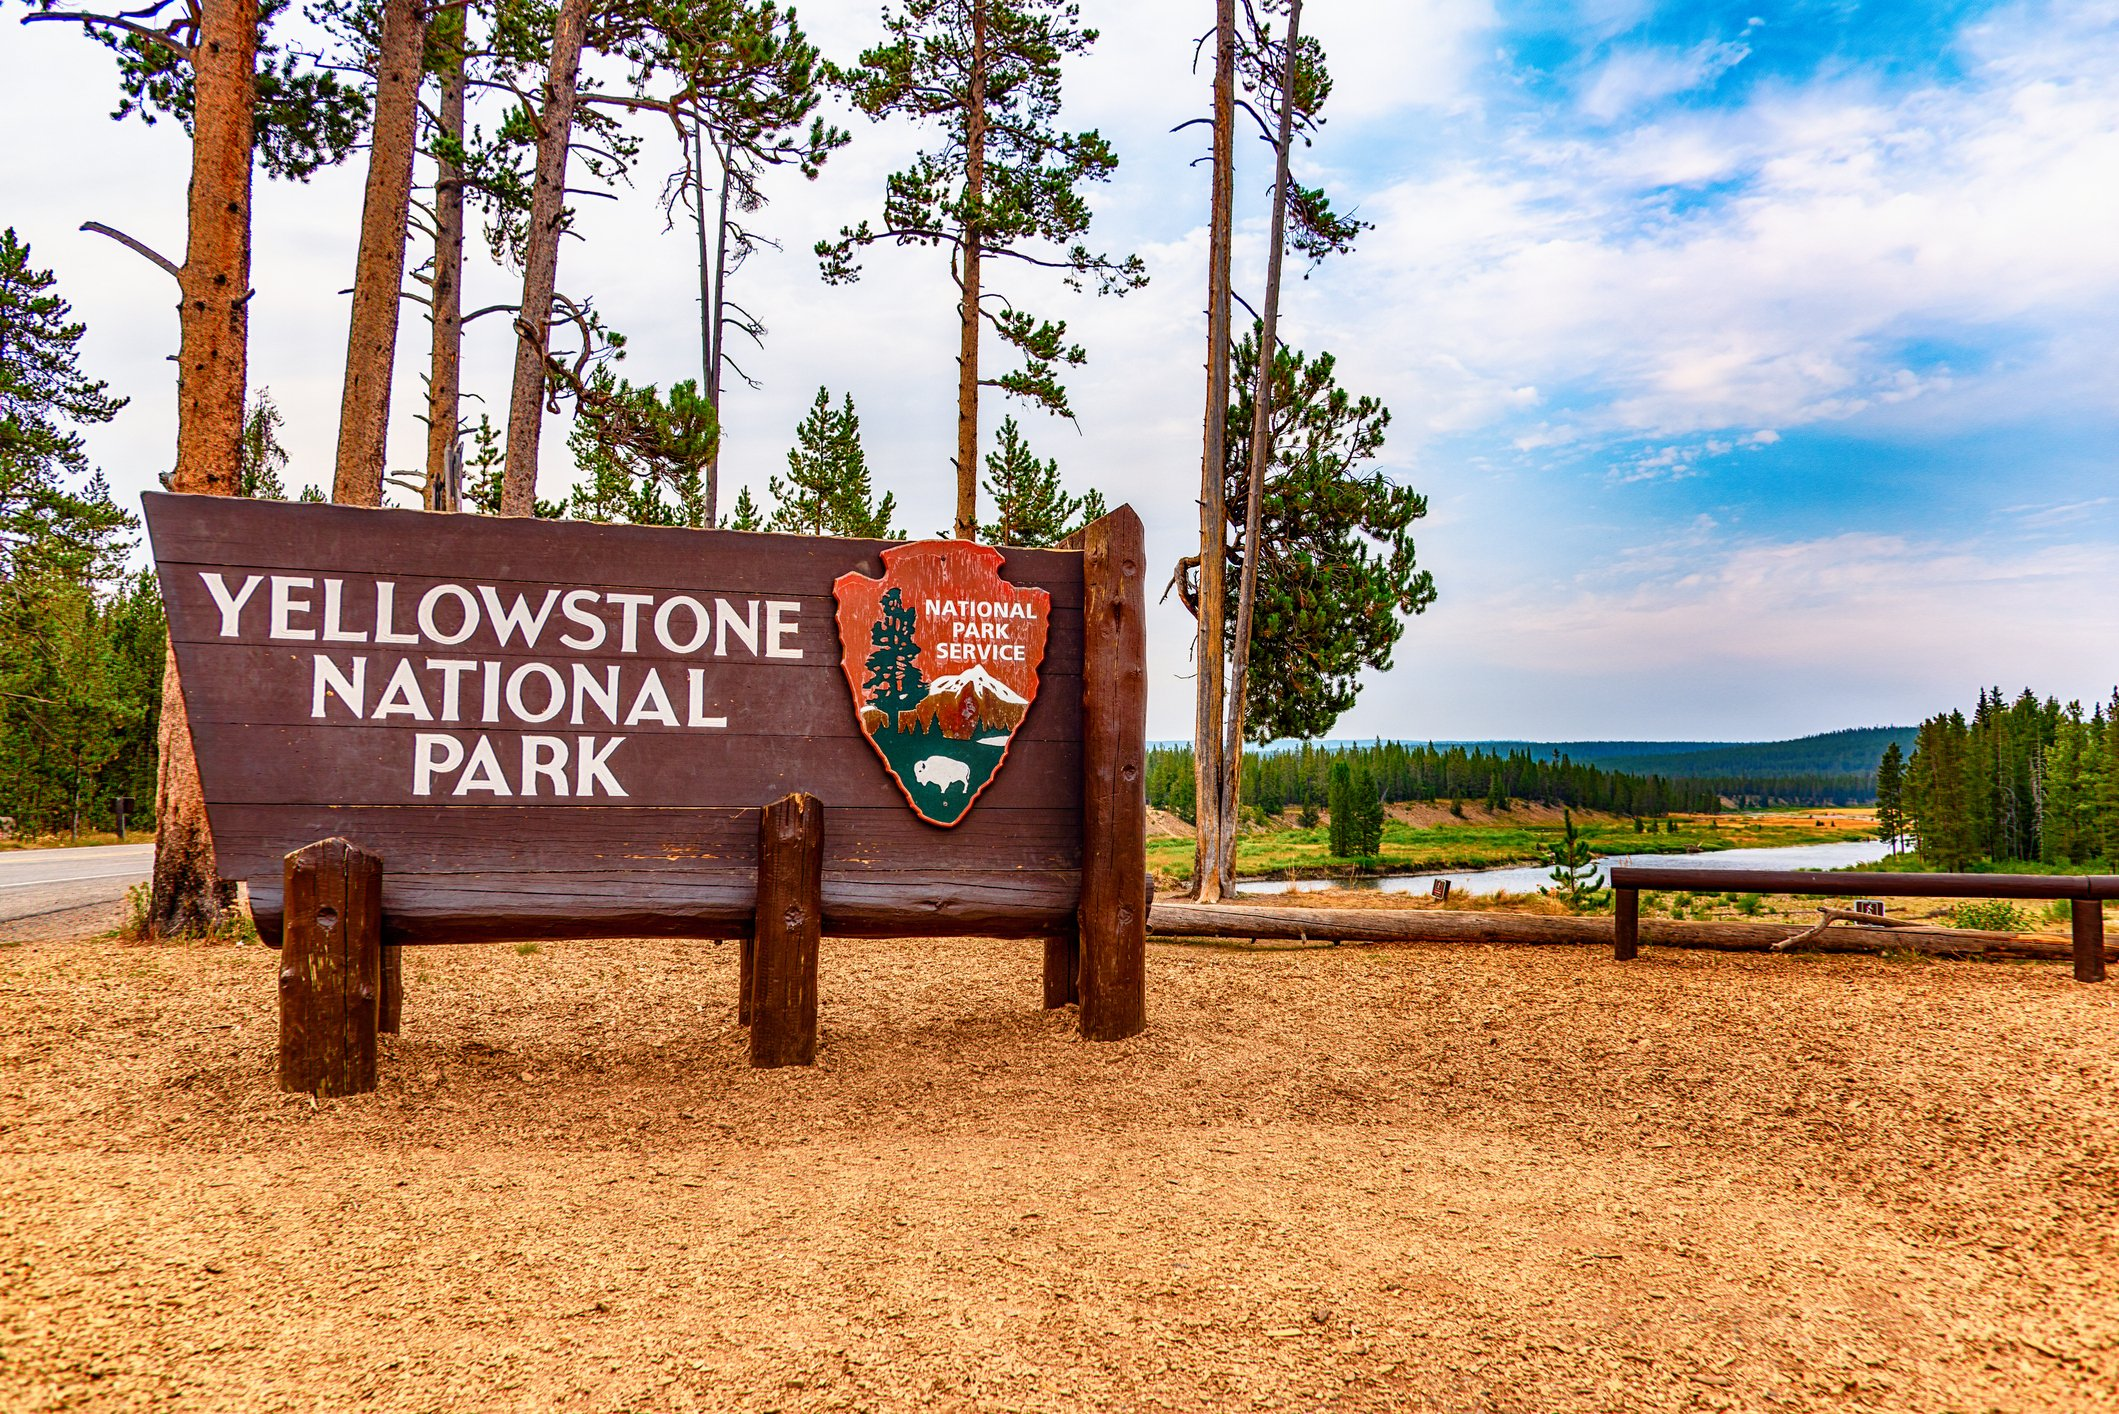 Yellowstone National Park, United States - August 16, 2018: The sign at the south entrance to Yellowstone National Park, America's first officially designated national park, located in Wyoming, USA.